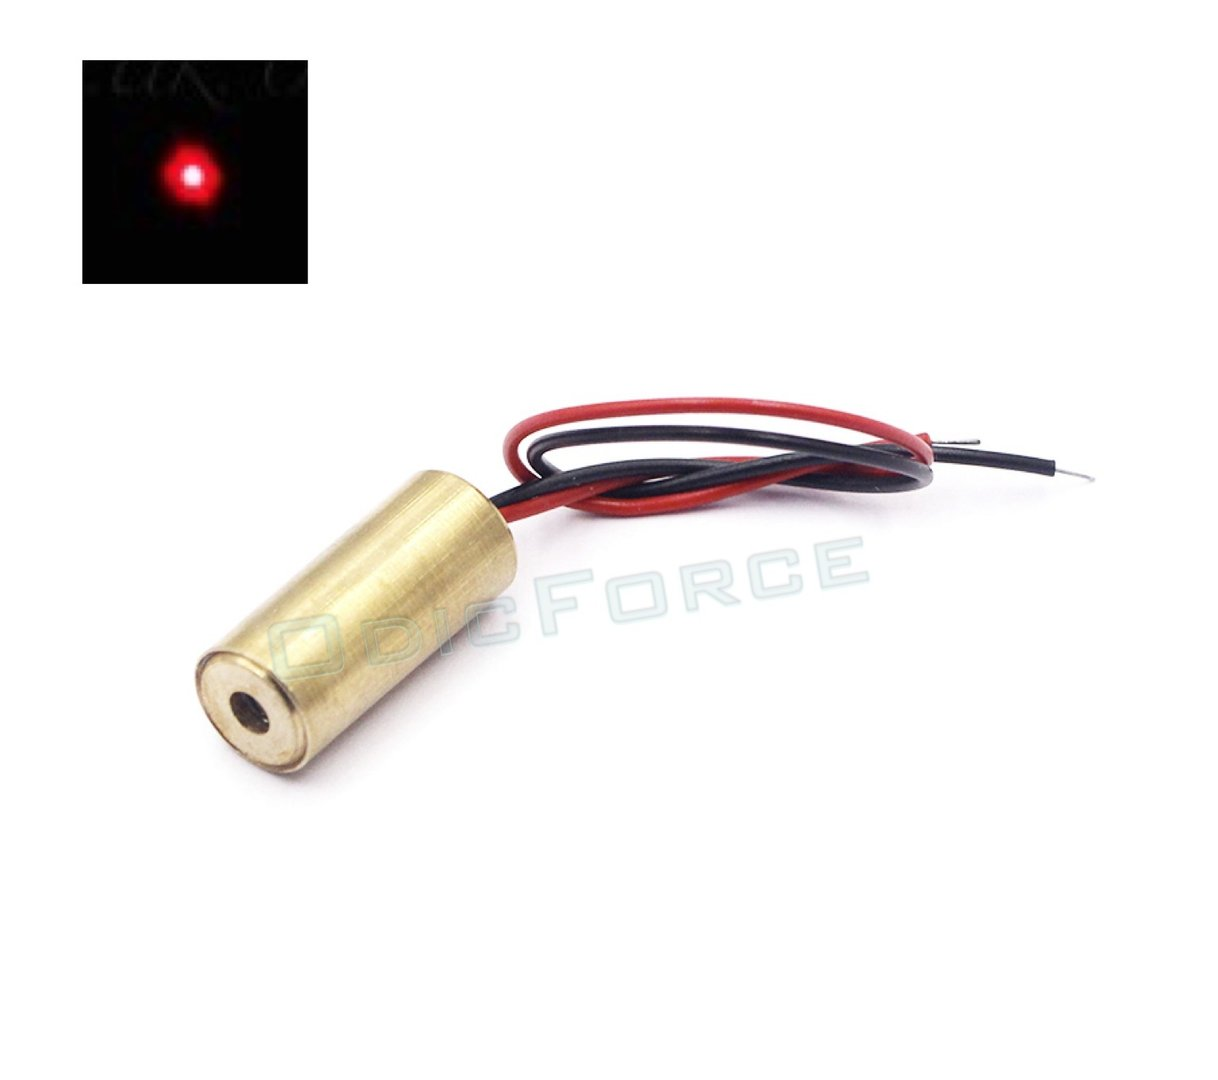 15-20mW  Red (650nm) Laser Module (9mm) 3V Class 3B